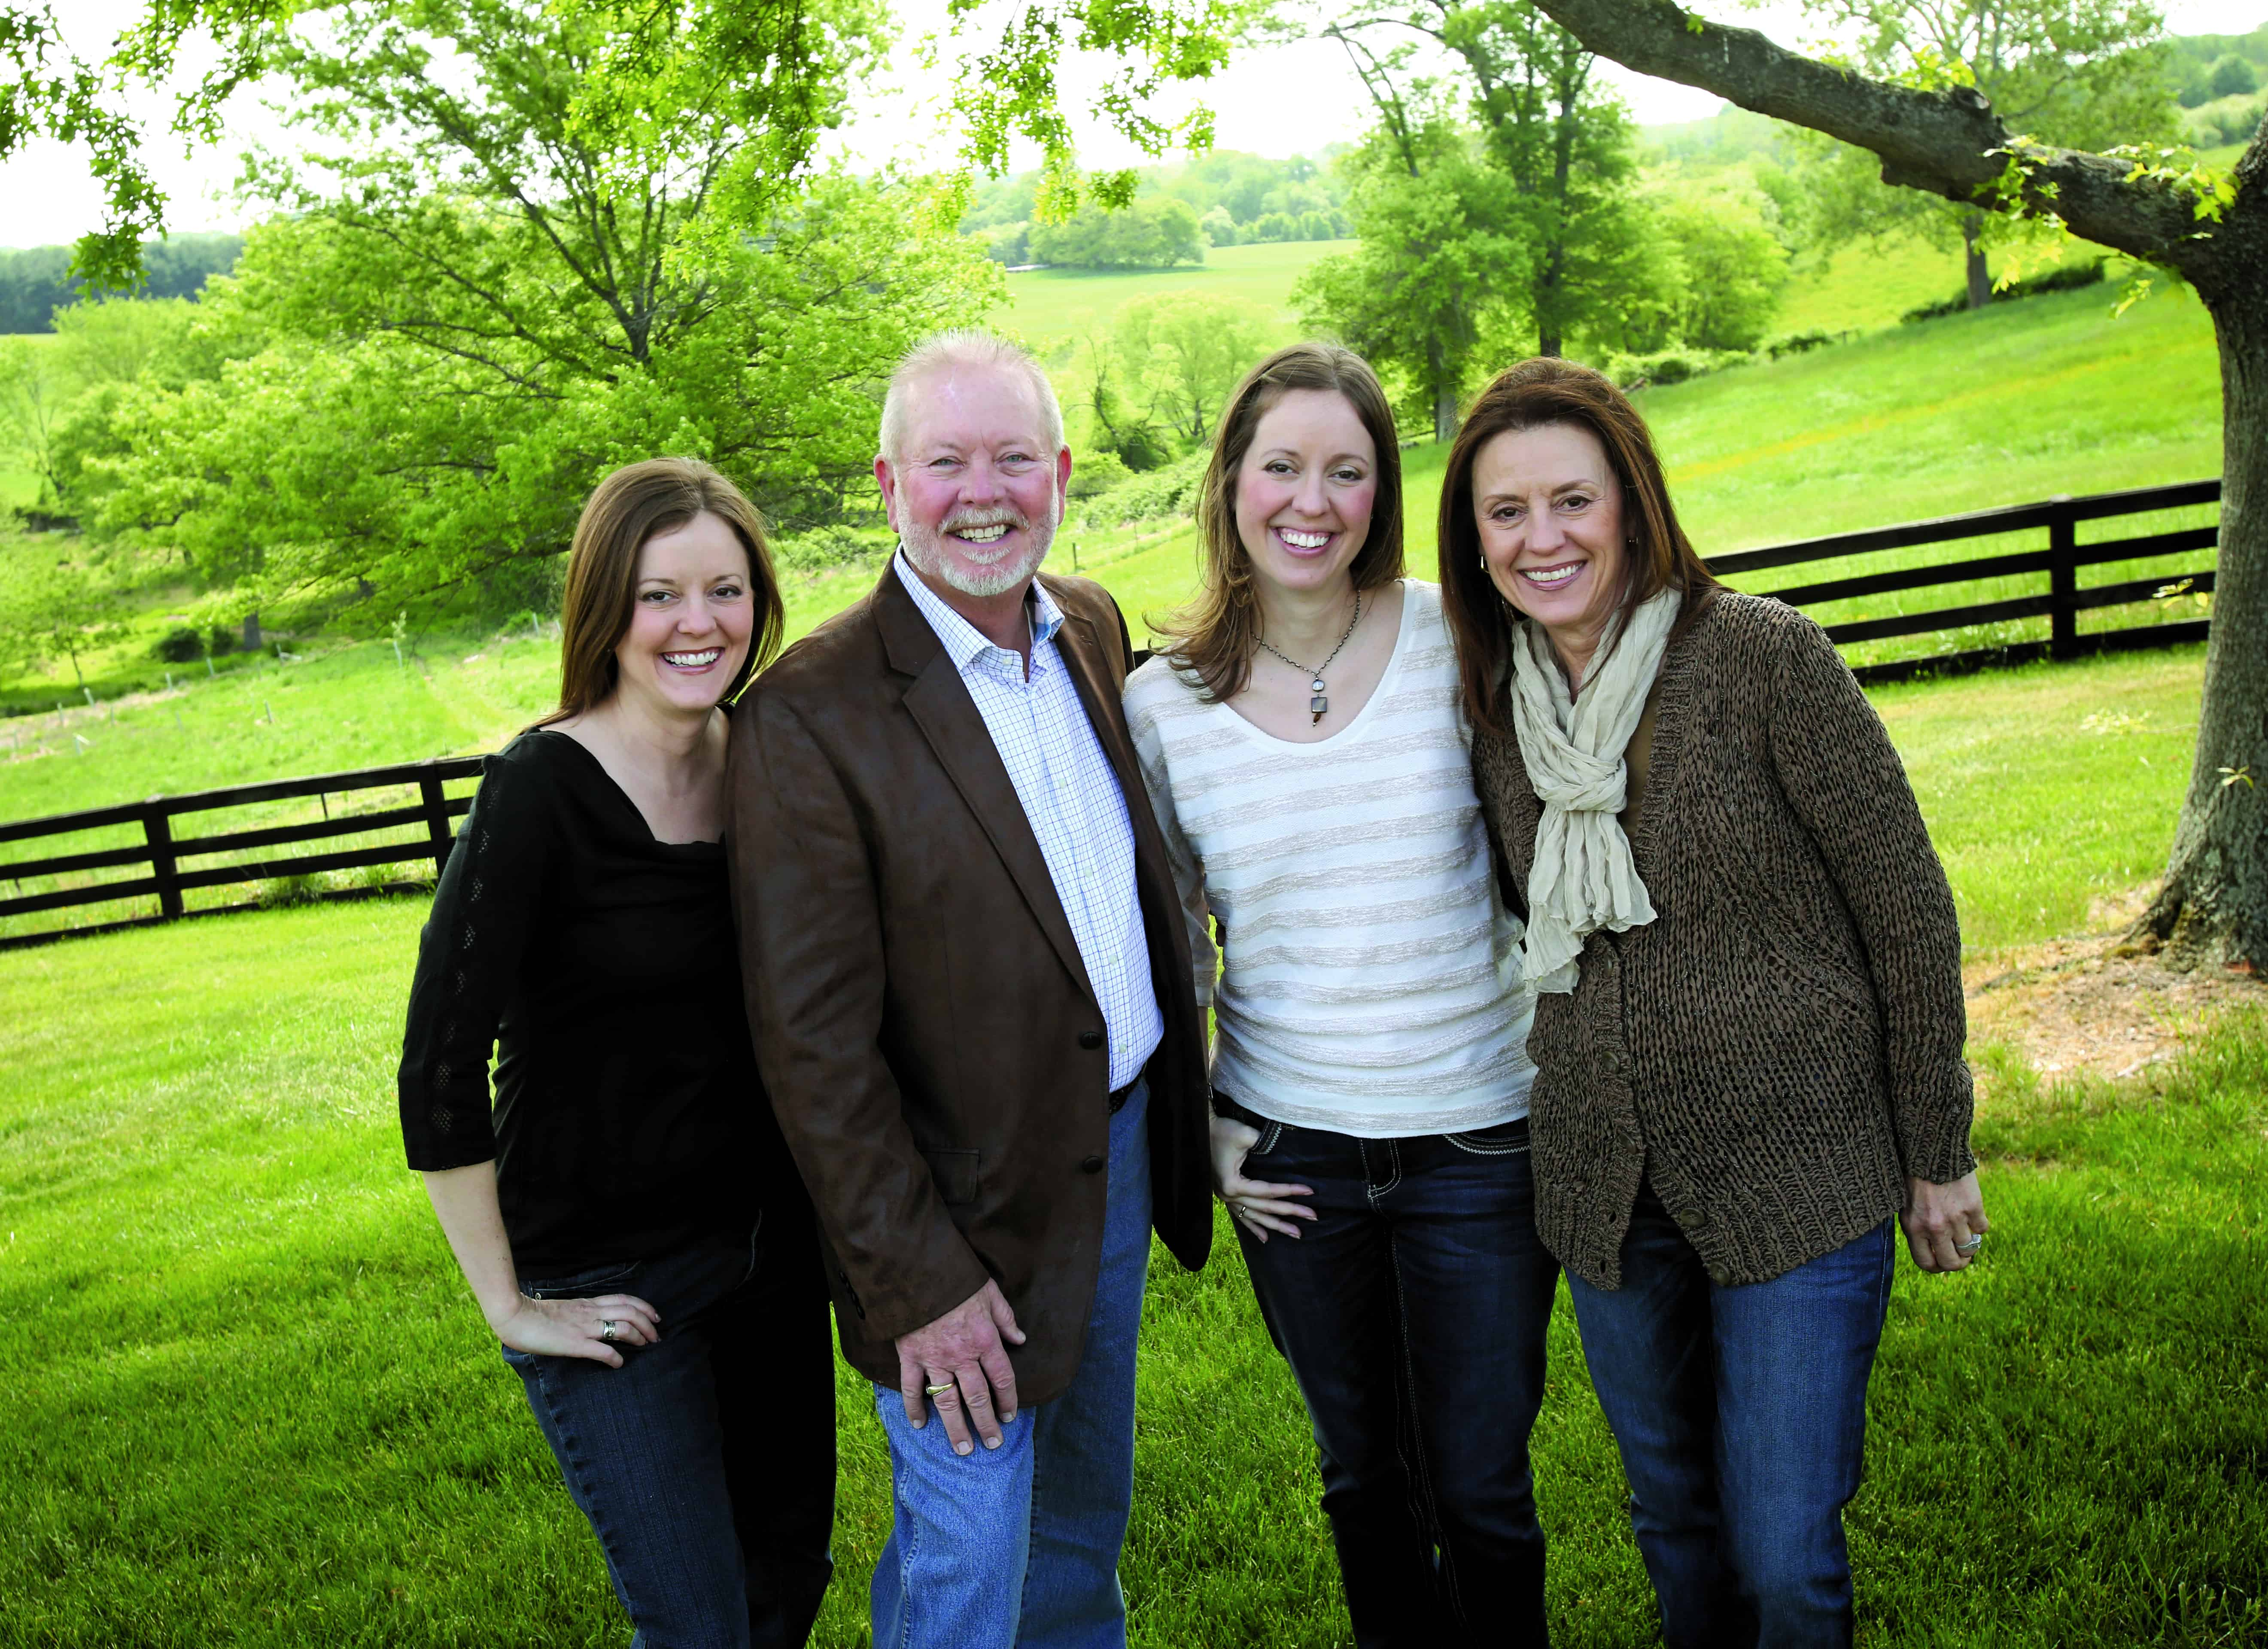 Family business: Randy Marriner with Mary, far right, and daughters Tori Marriner Buscher, left and Rachael Marriner Mull.